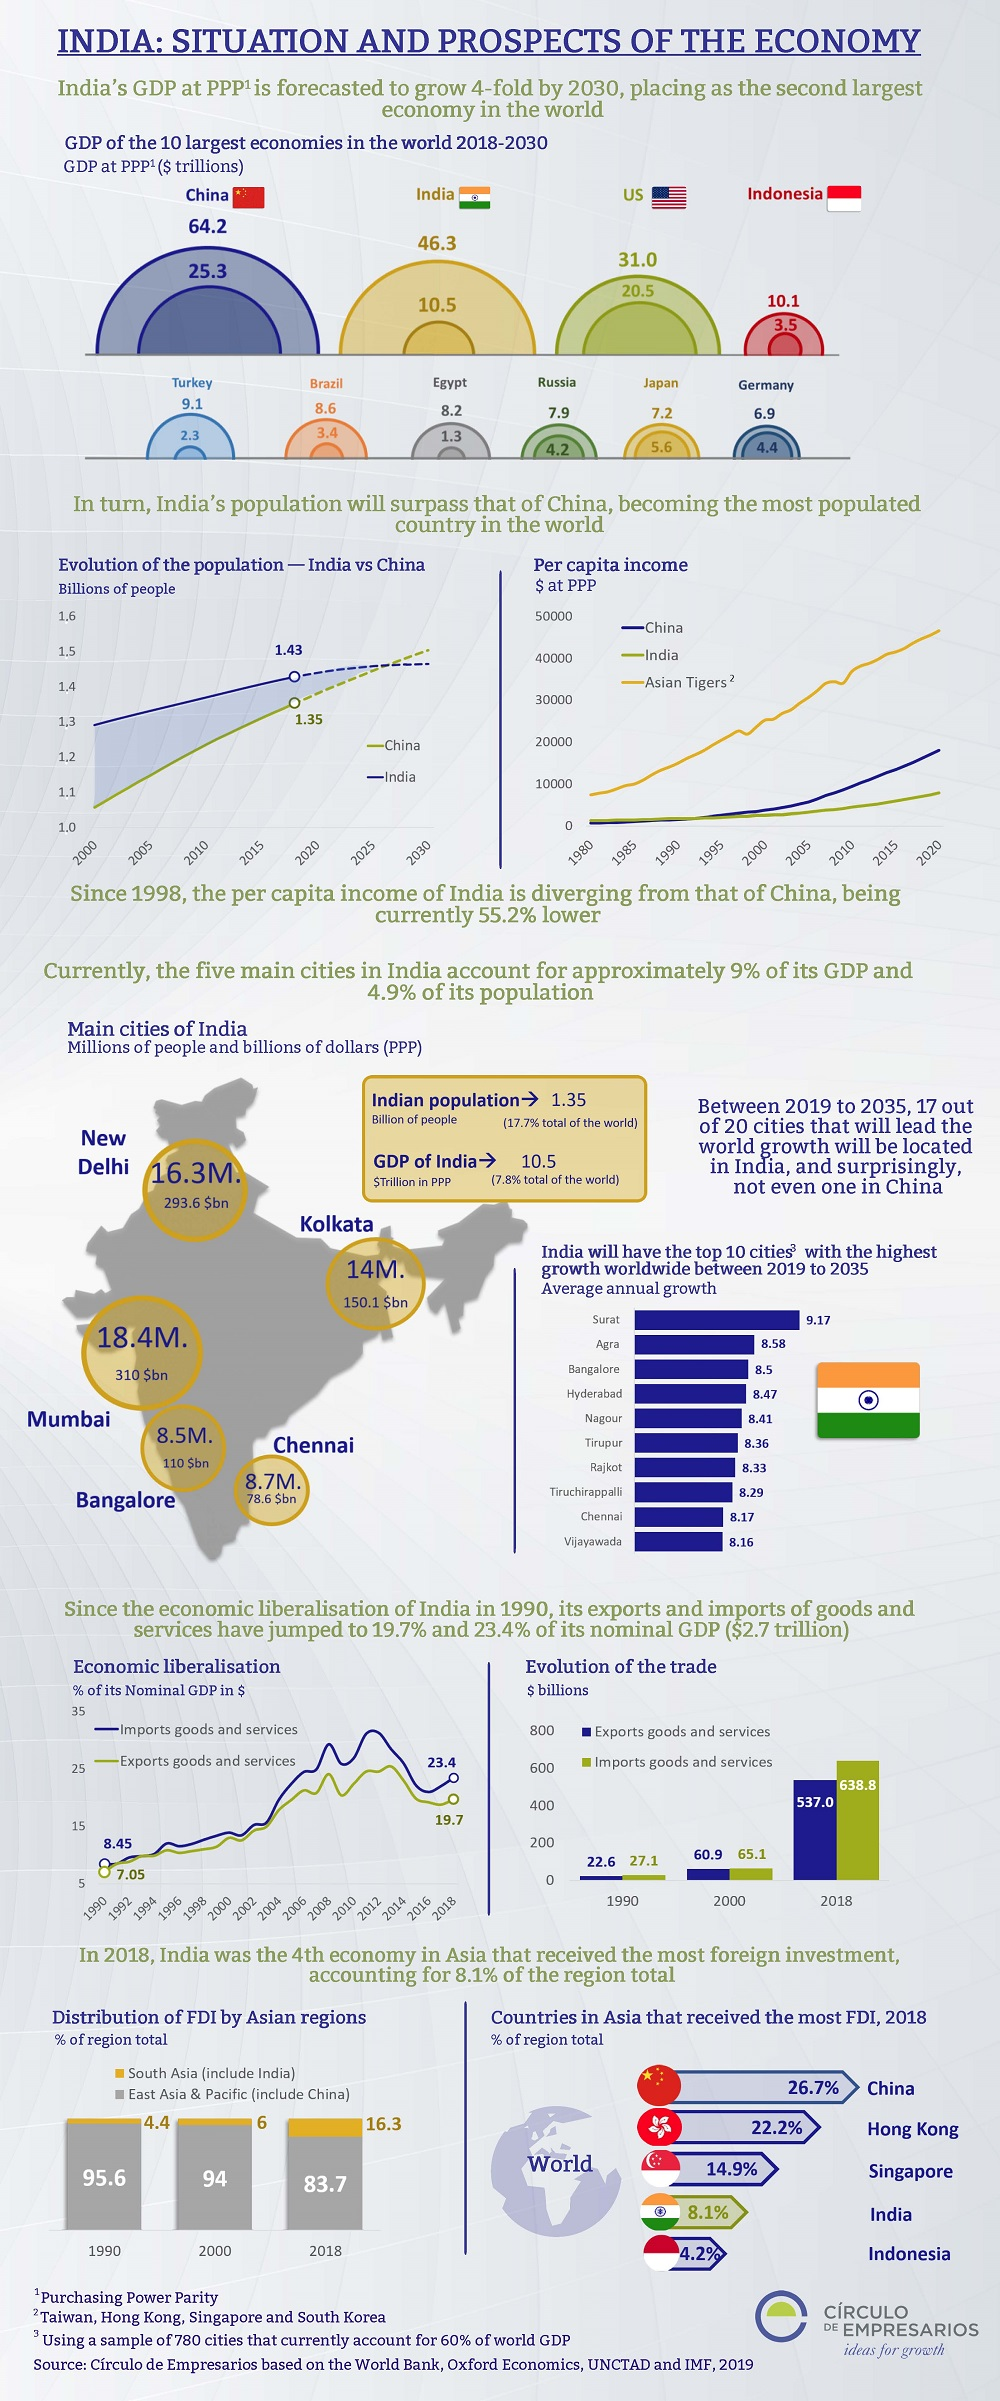 India: Situation and prospects of the economy